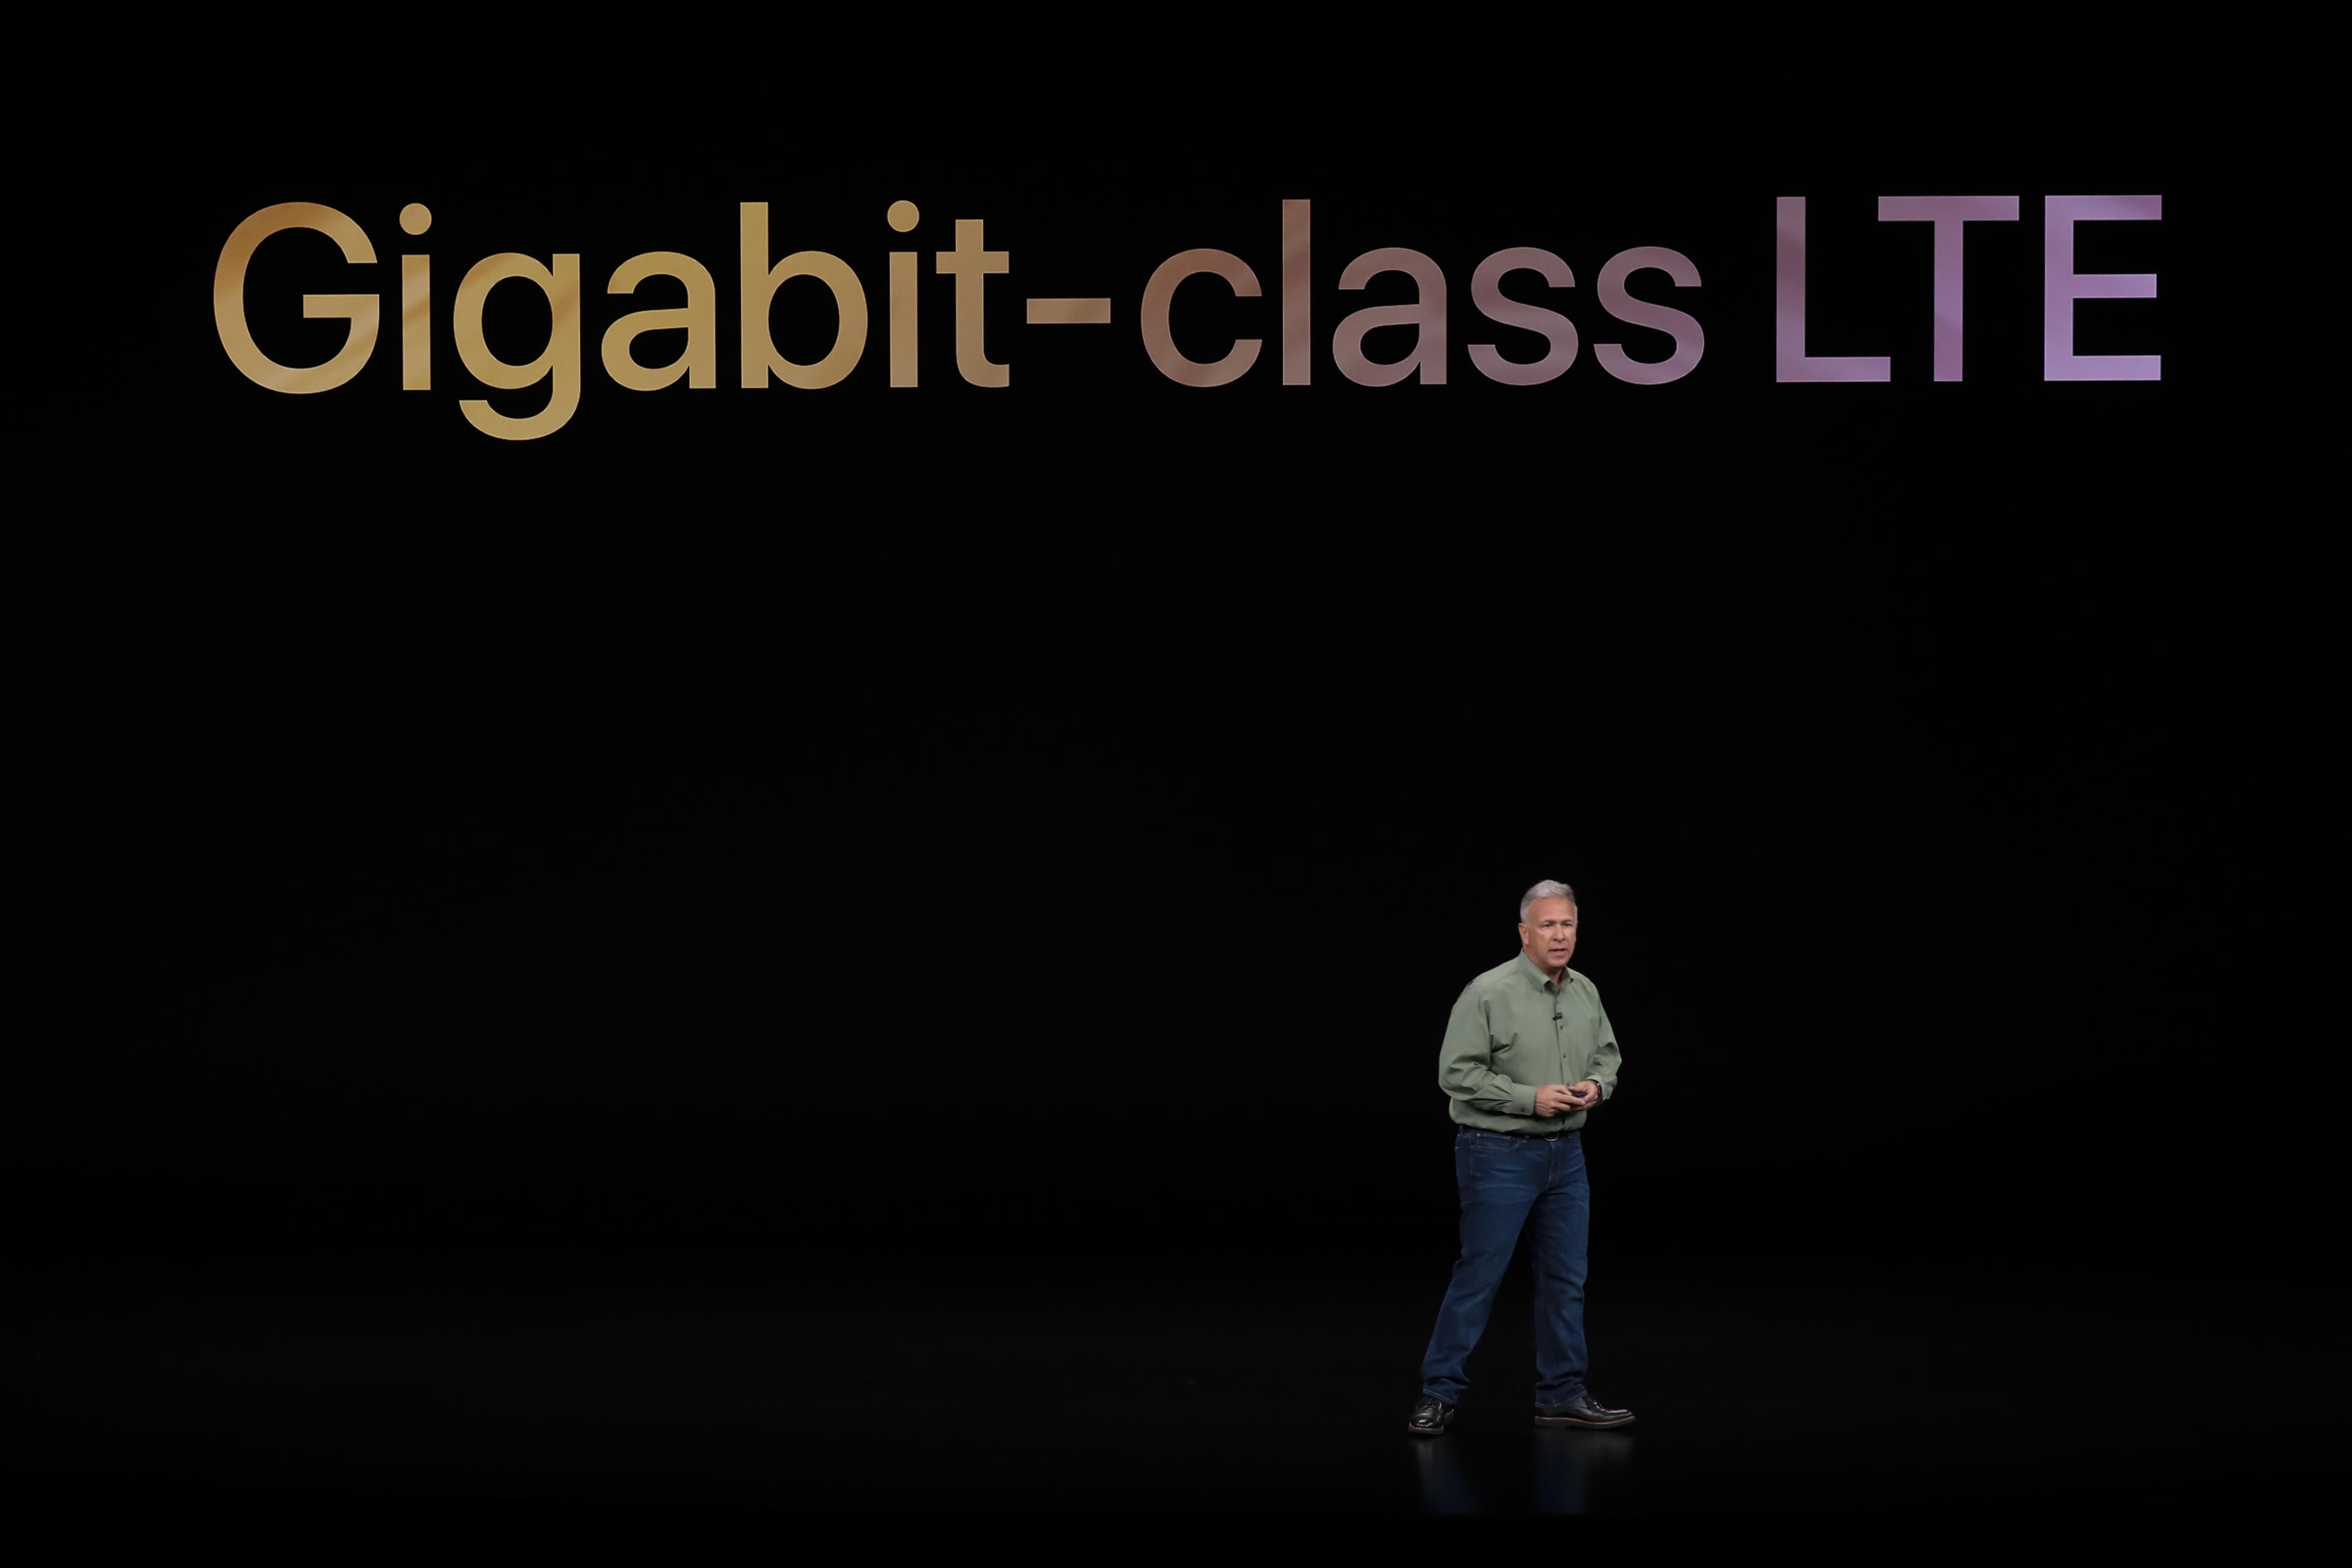 apple-event-091218-gigabit-lte-phil-schiller-0354